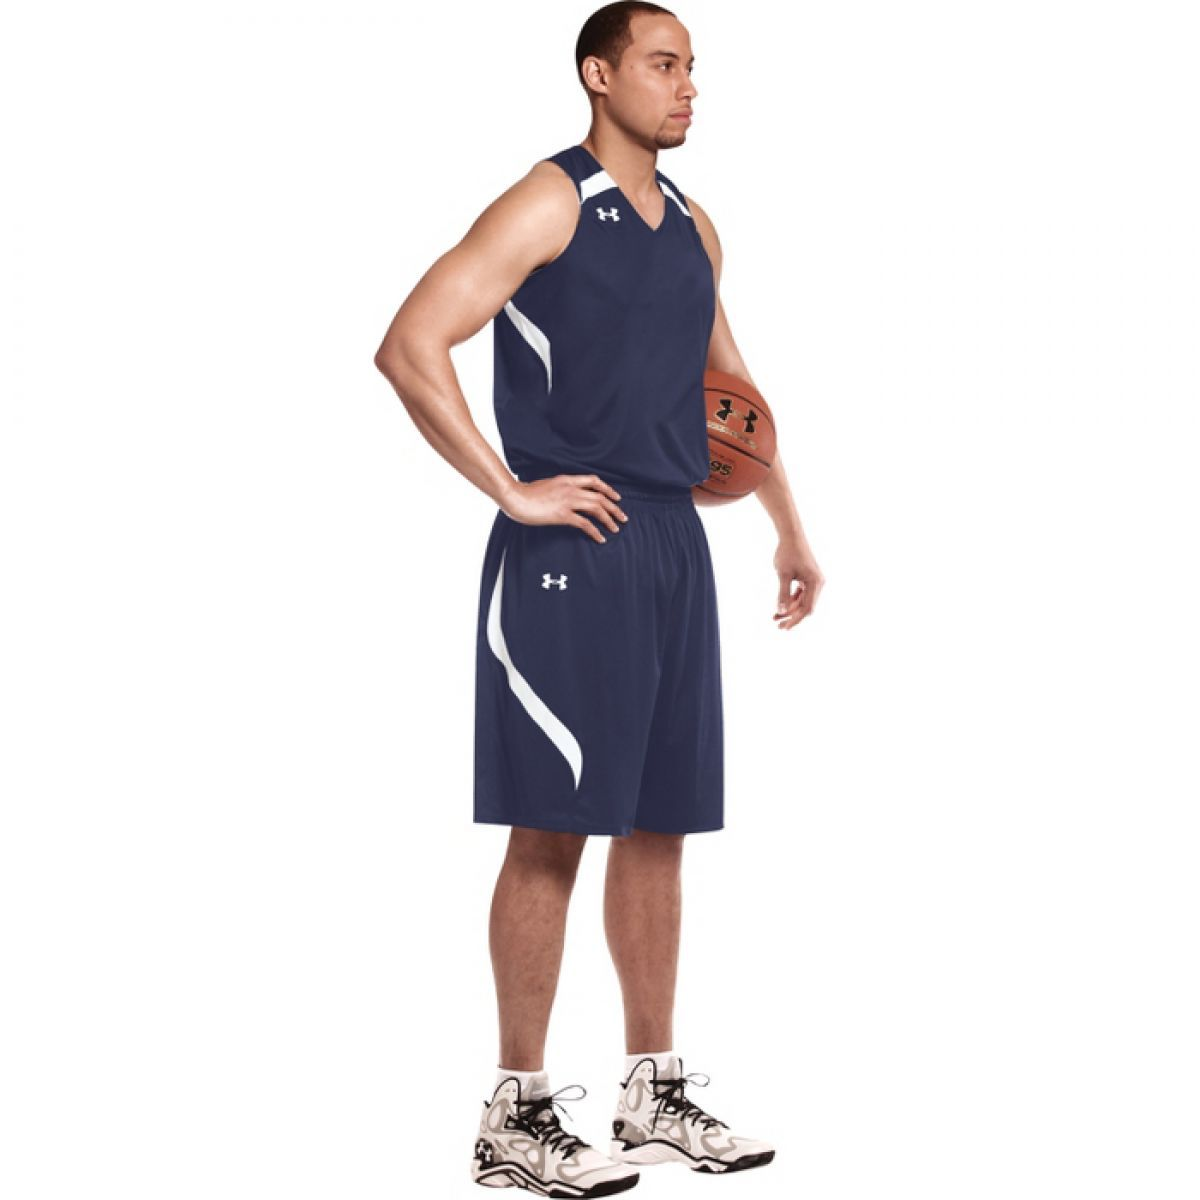 Under Armour Youth Drop Step Reversible Basketball Short